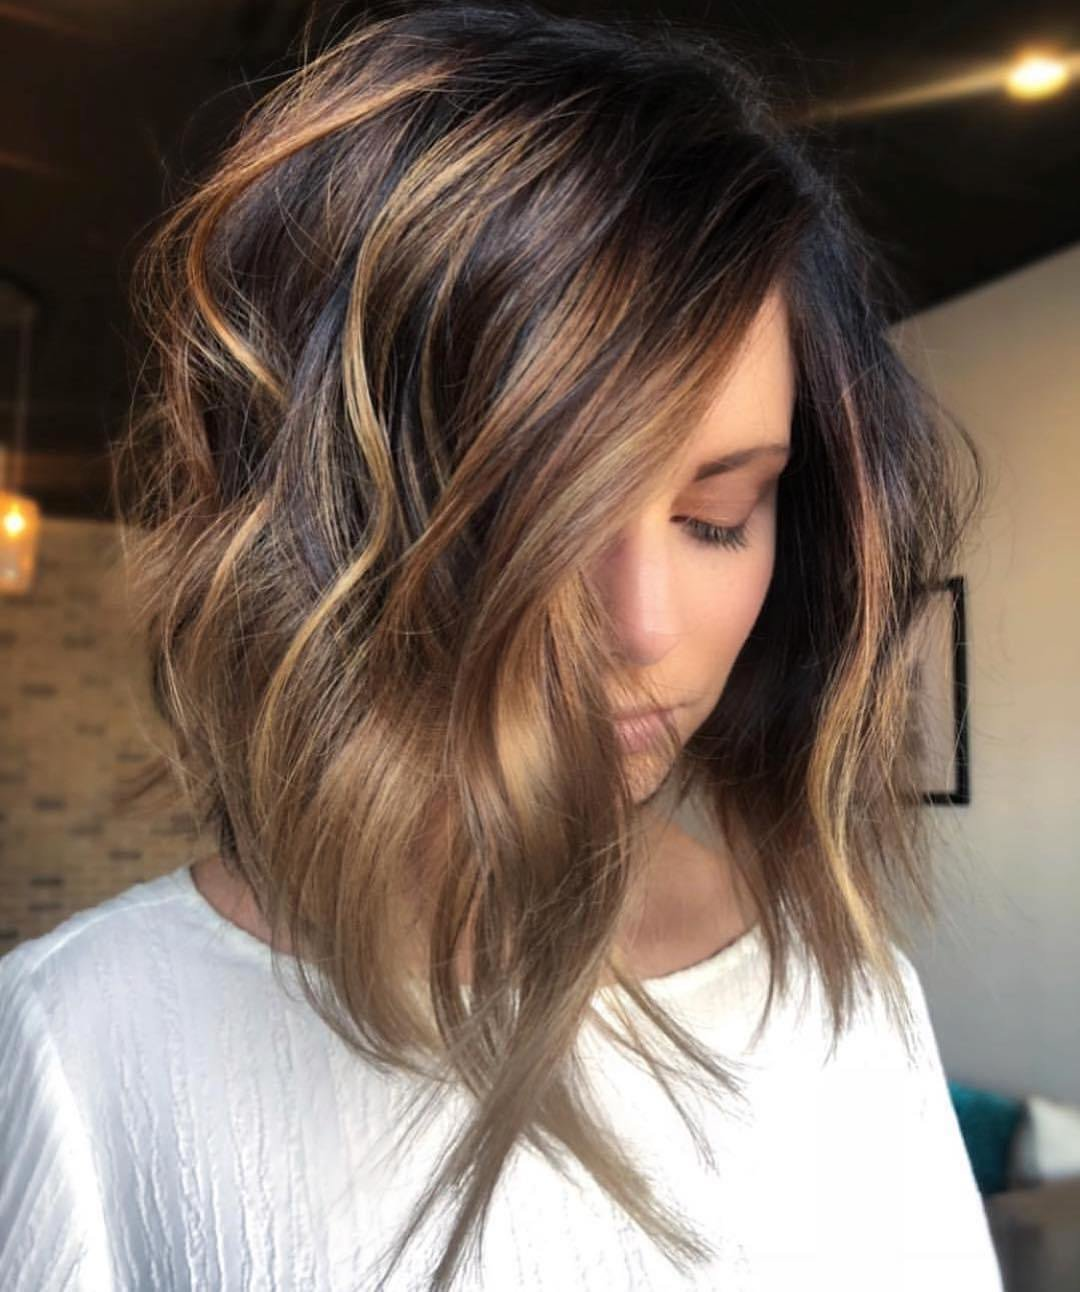 The Best 10 Trendy Ombre And Balayage Hairstyles For Shoulder Pictures